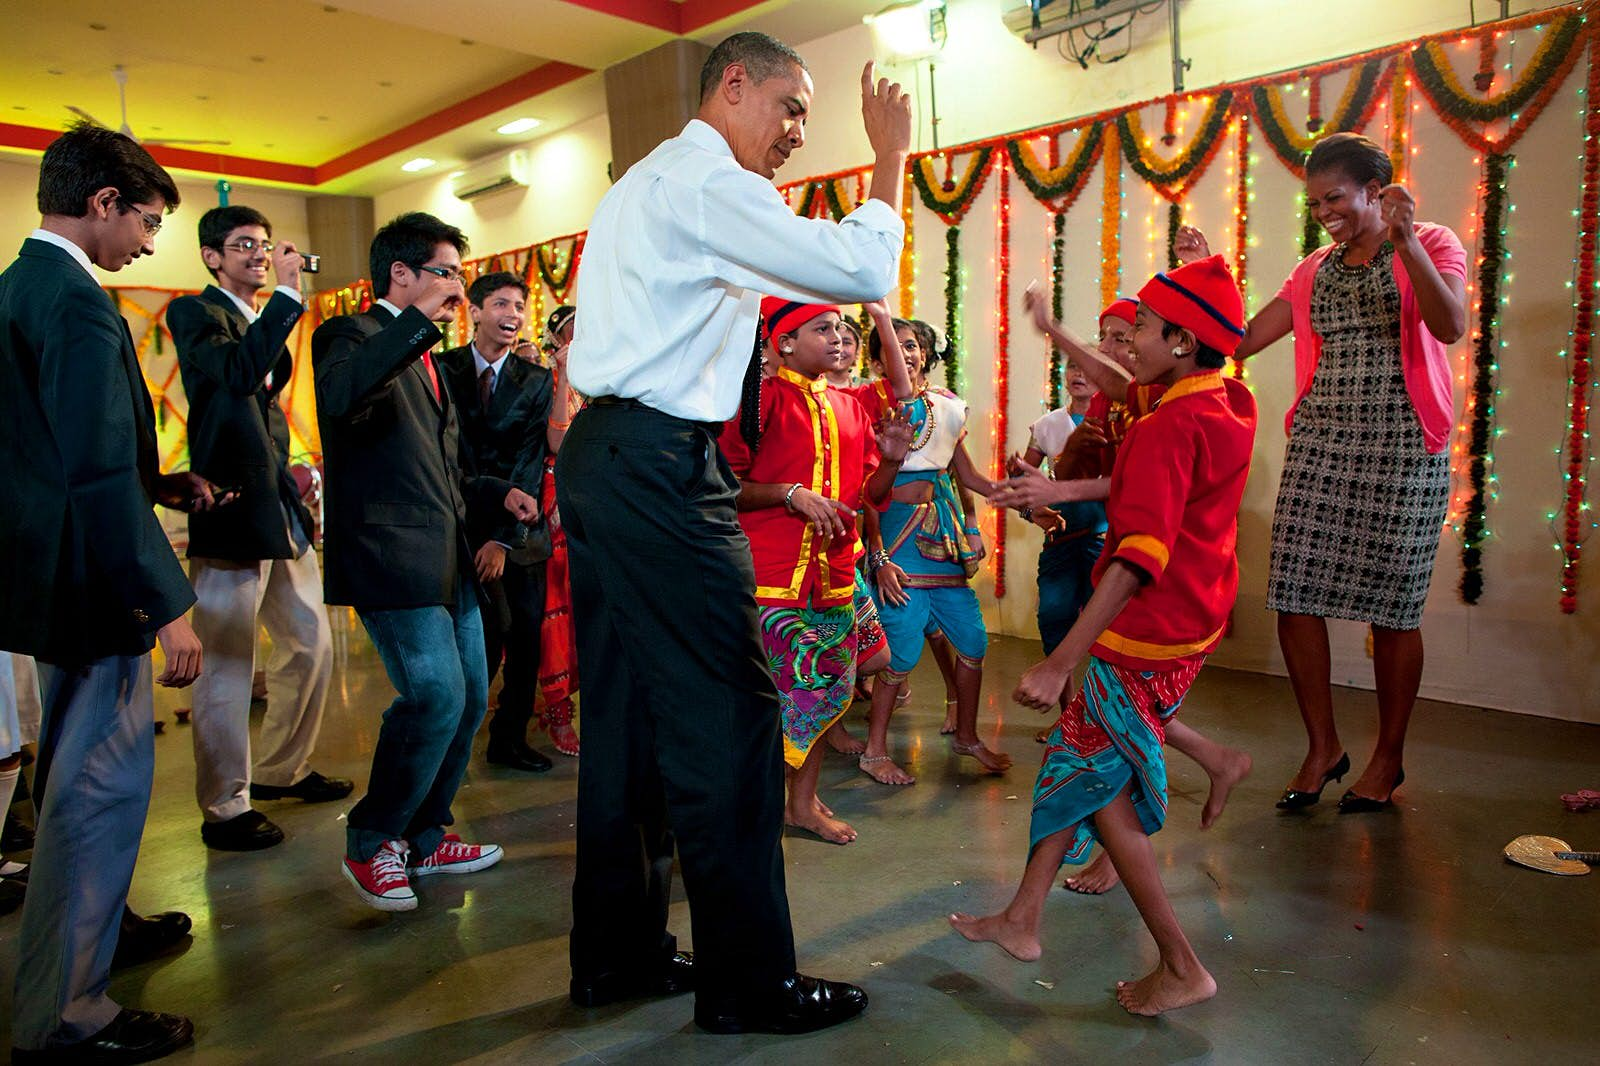 The president dancing with school children and the First Lady in Mumbai, India, Nov 7, 2010©Pete Souza / Official White House Photo